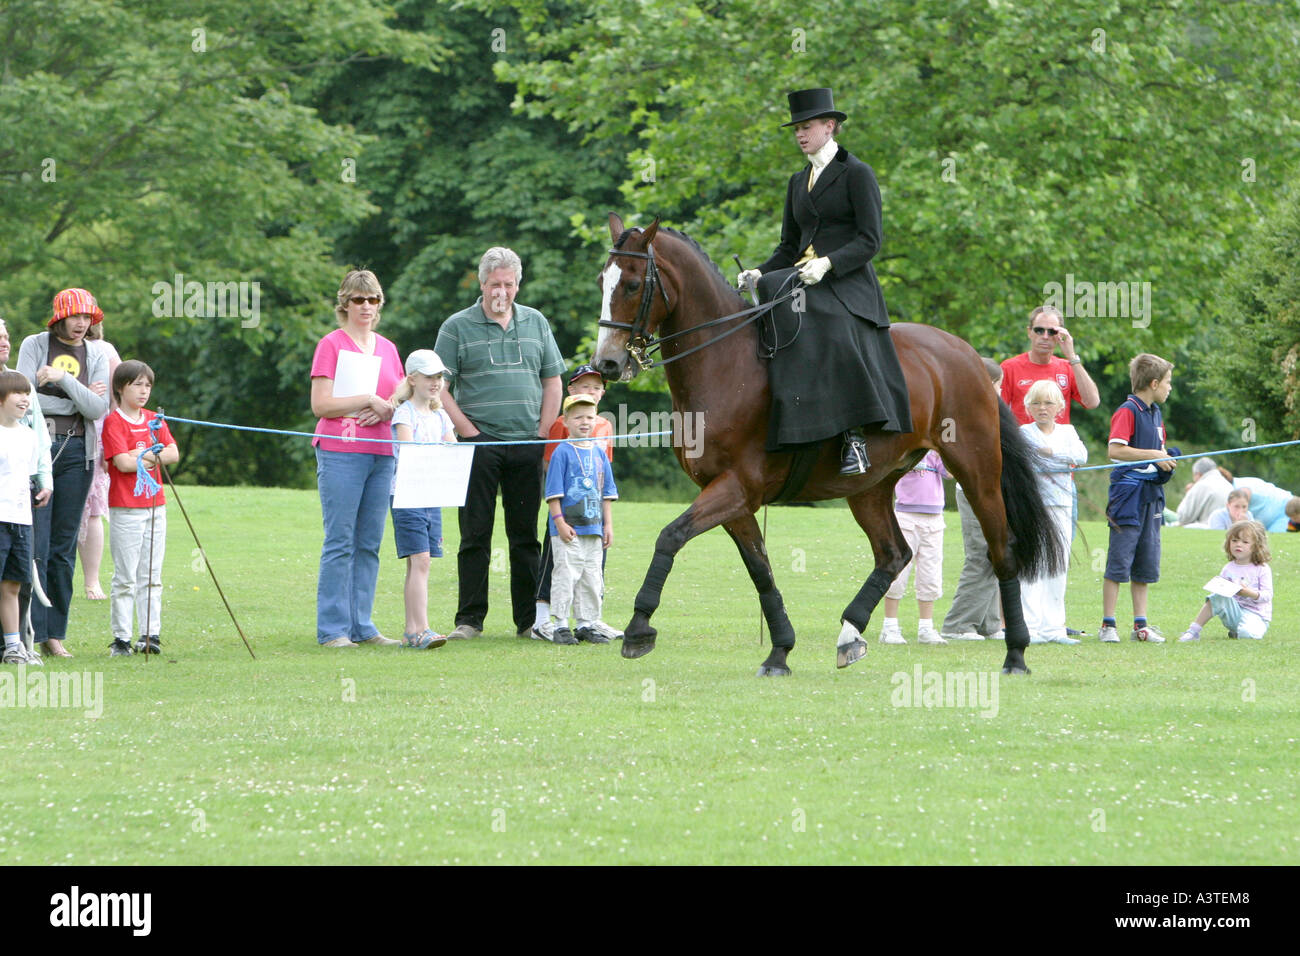 Dressage display by female rider wearing black dress and riding side saddle - Stock Image